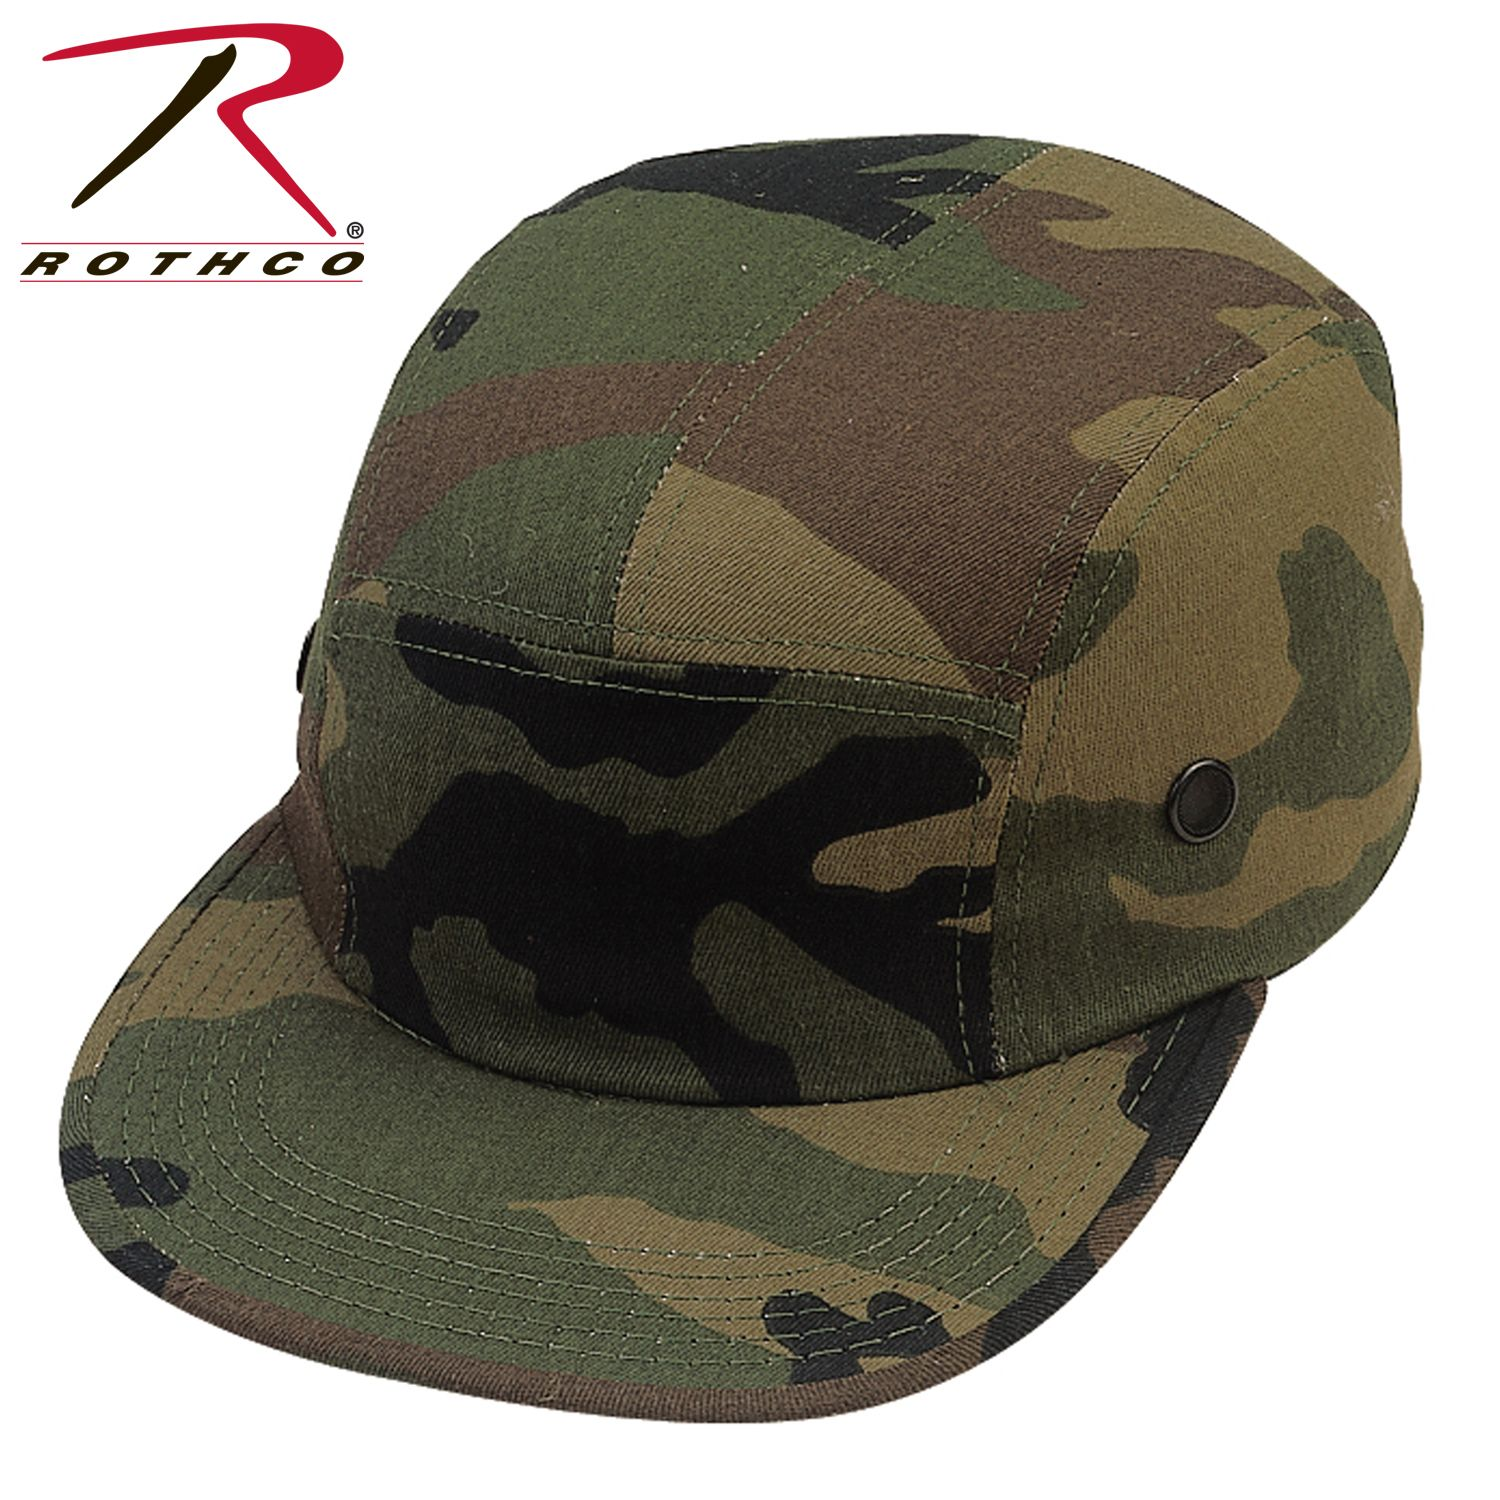 c3eab665605e9 Buy Rothco 5 Panel Military Street Cap - Rothco Online at Best price ...